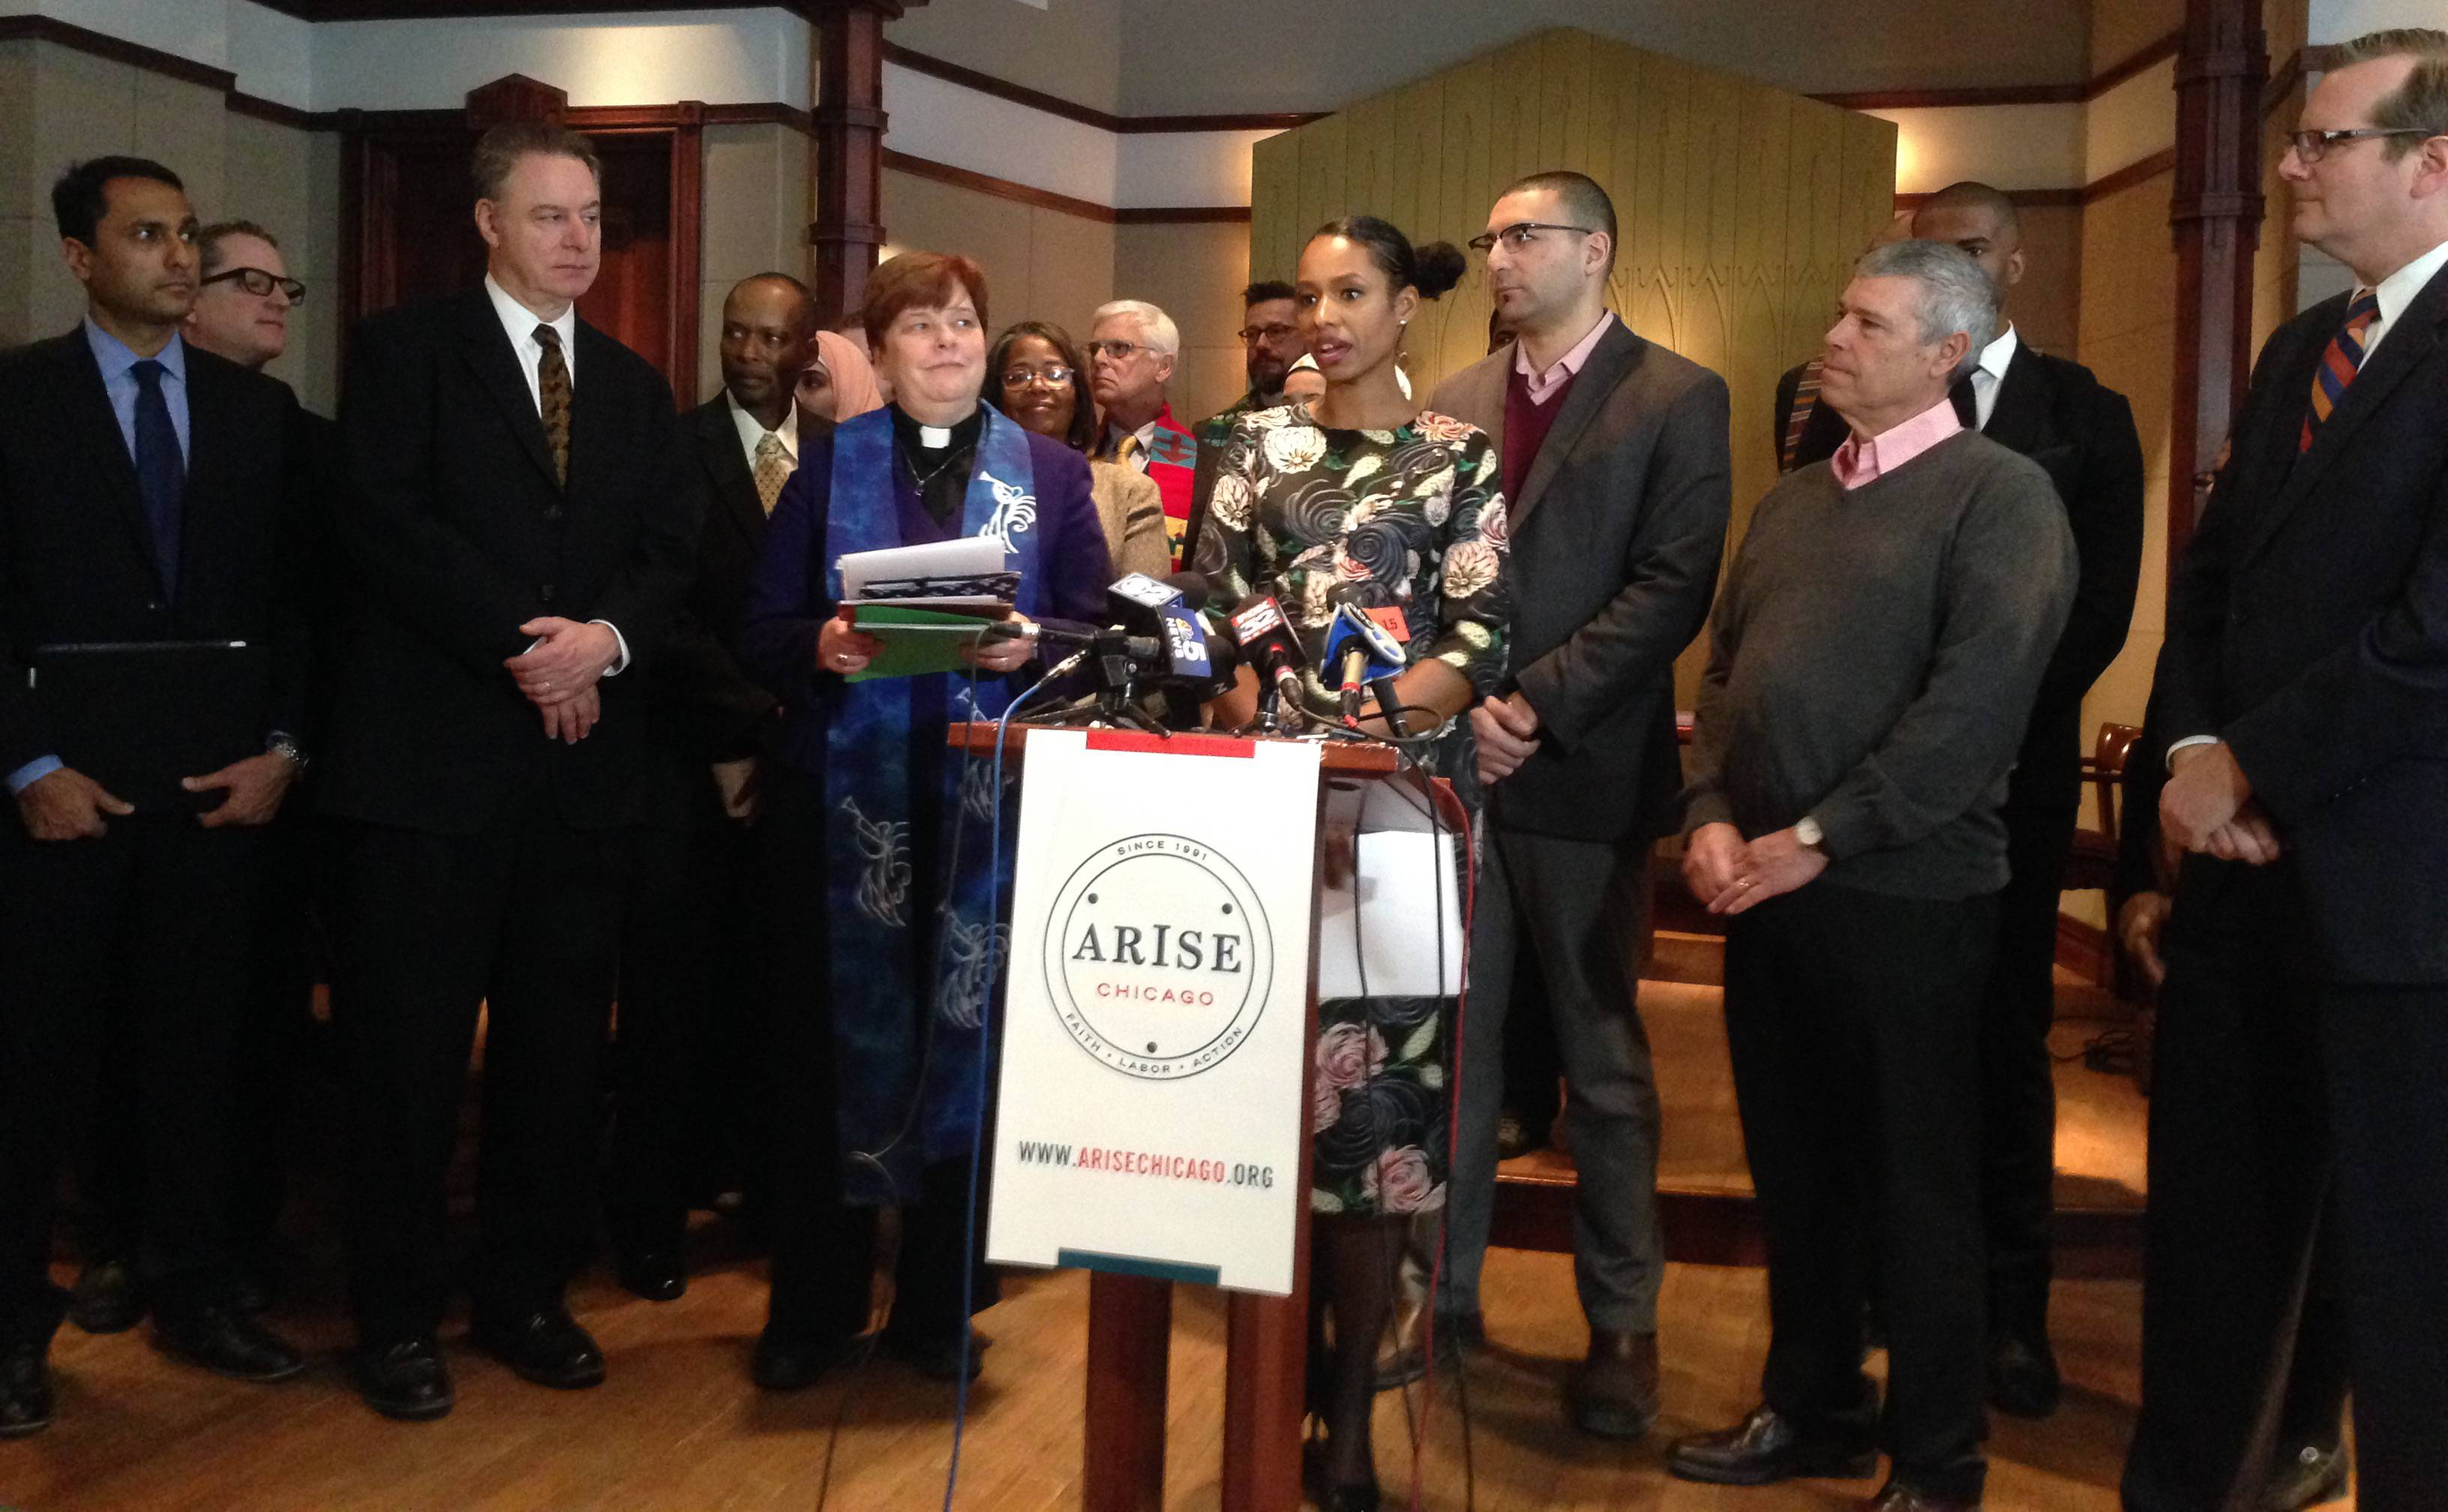 Former Wheaton College professor Larycia Hawkins, officials from Wheaton College and supporters speak at a news conference Wednesday in Chicago. The school announced it is creating an endowed scholarship in her name.